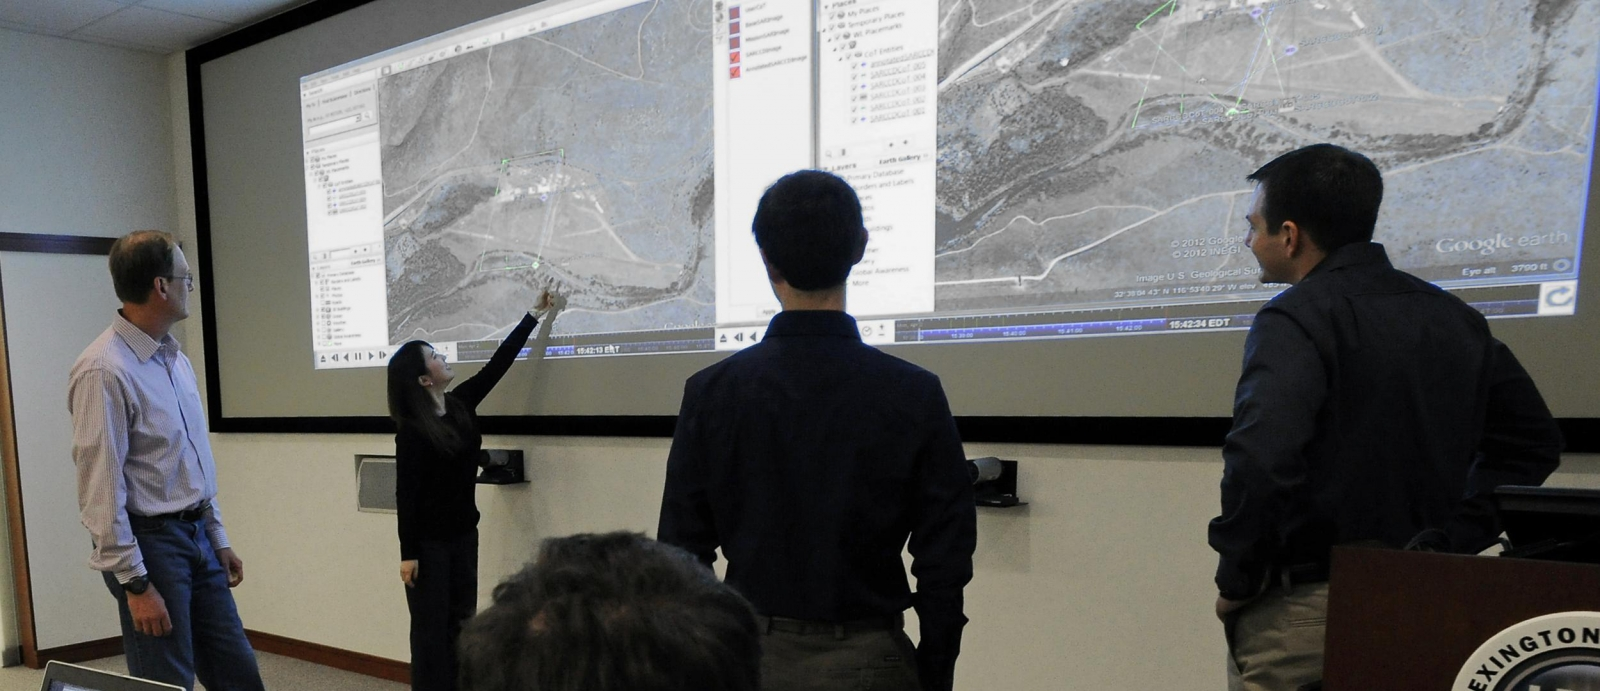 Technical staff members in the Intelligence and Decision Technologies Group review imagery of a location of interest in the maps projected in the PED Lab.